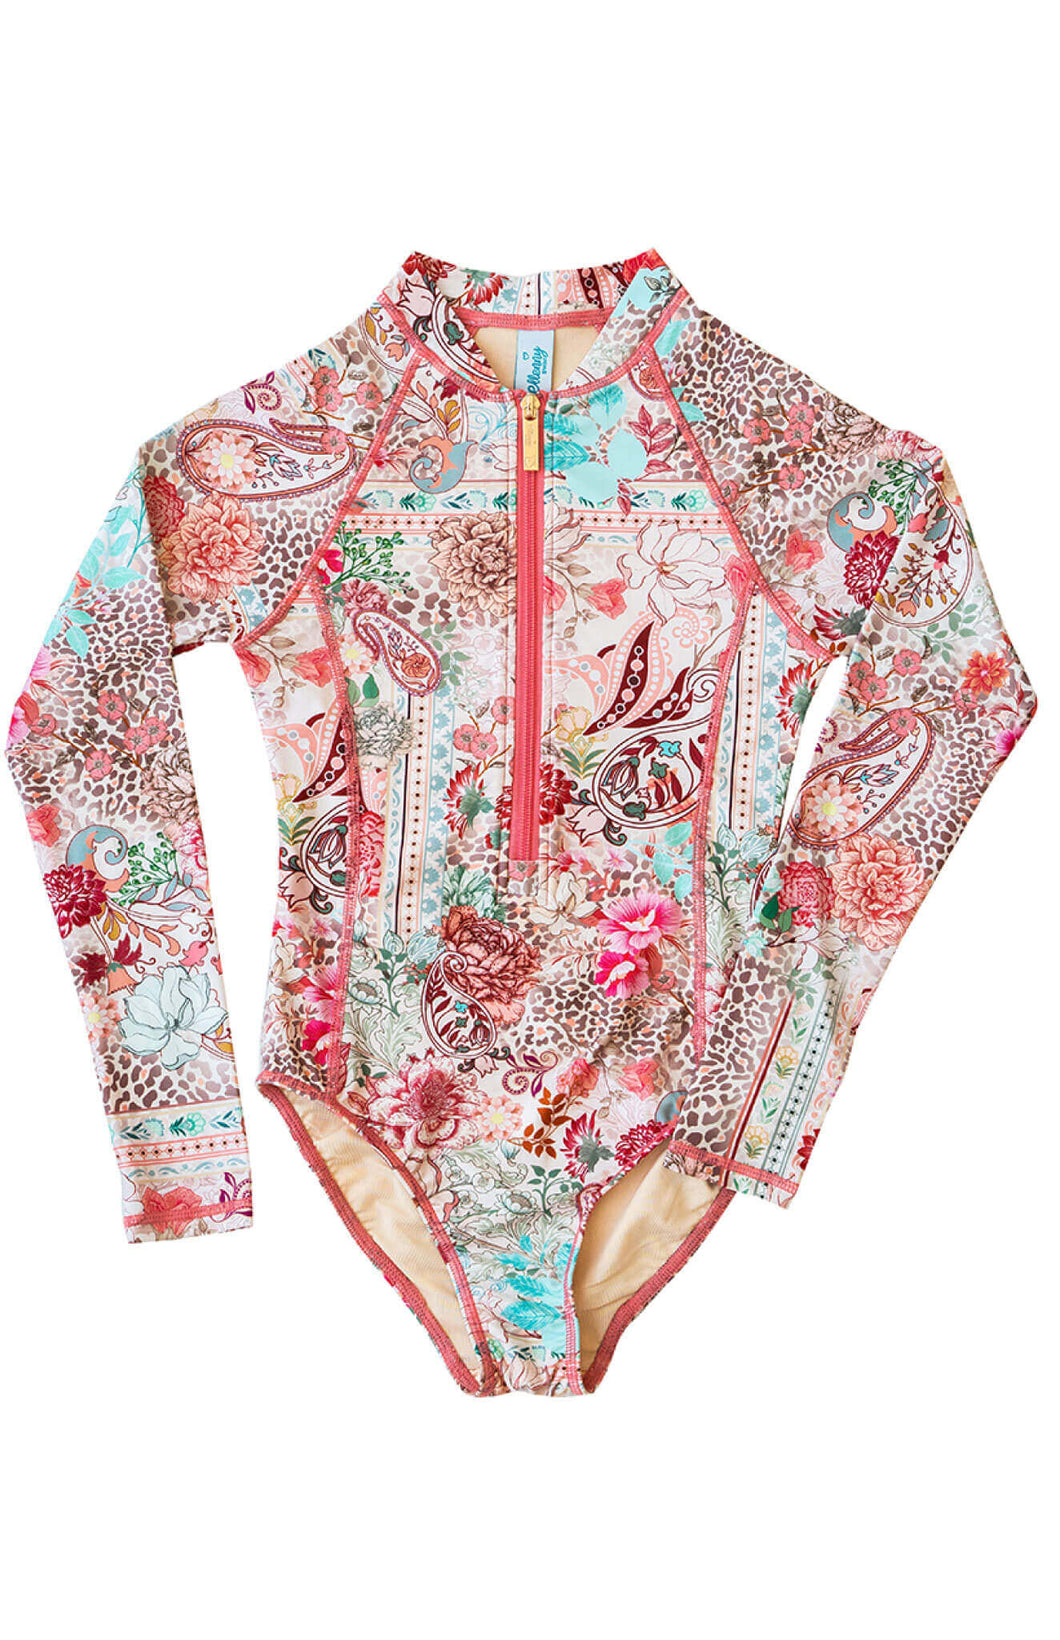 Ellenny Swim Girls Long Sleeve Sun Suit Wildflowers Flatlay